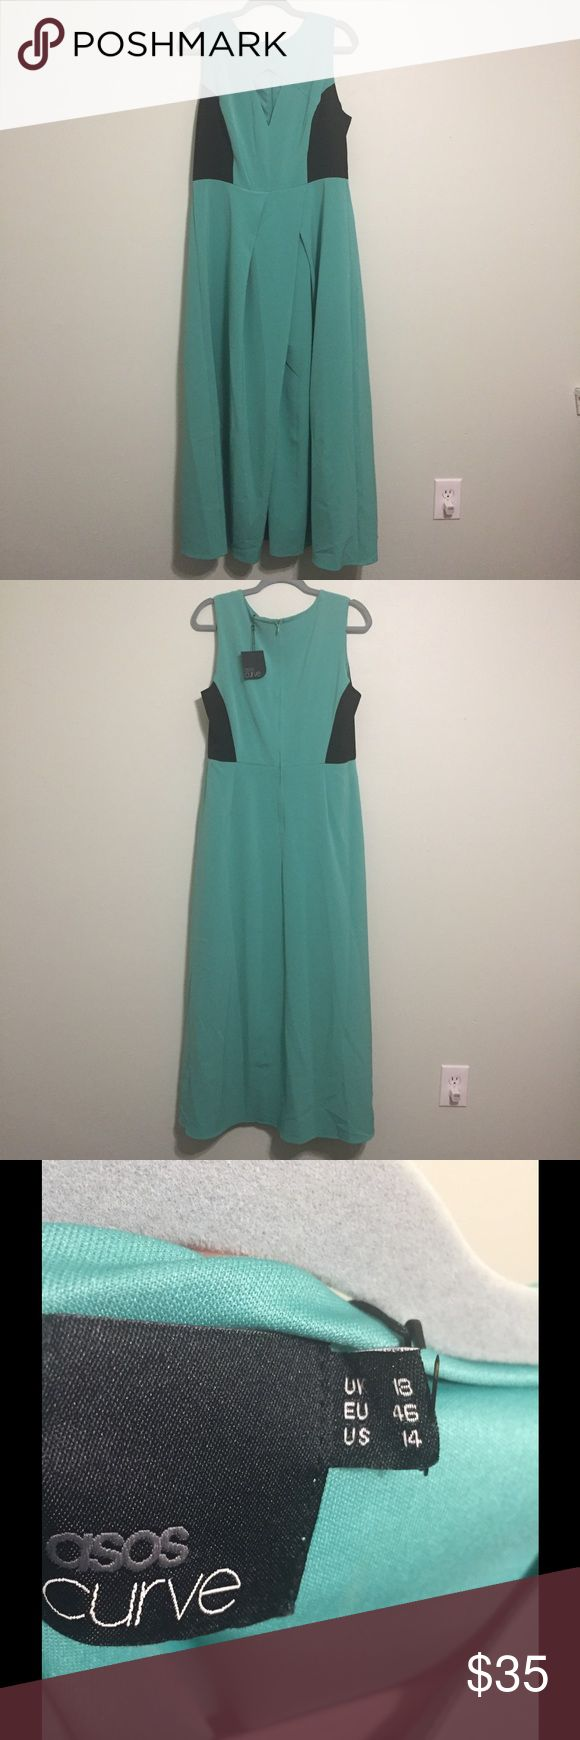 ASOS Curve Dress Never worn! Still has tags attached! US 14 ASOS Curve Dresses